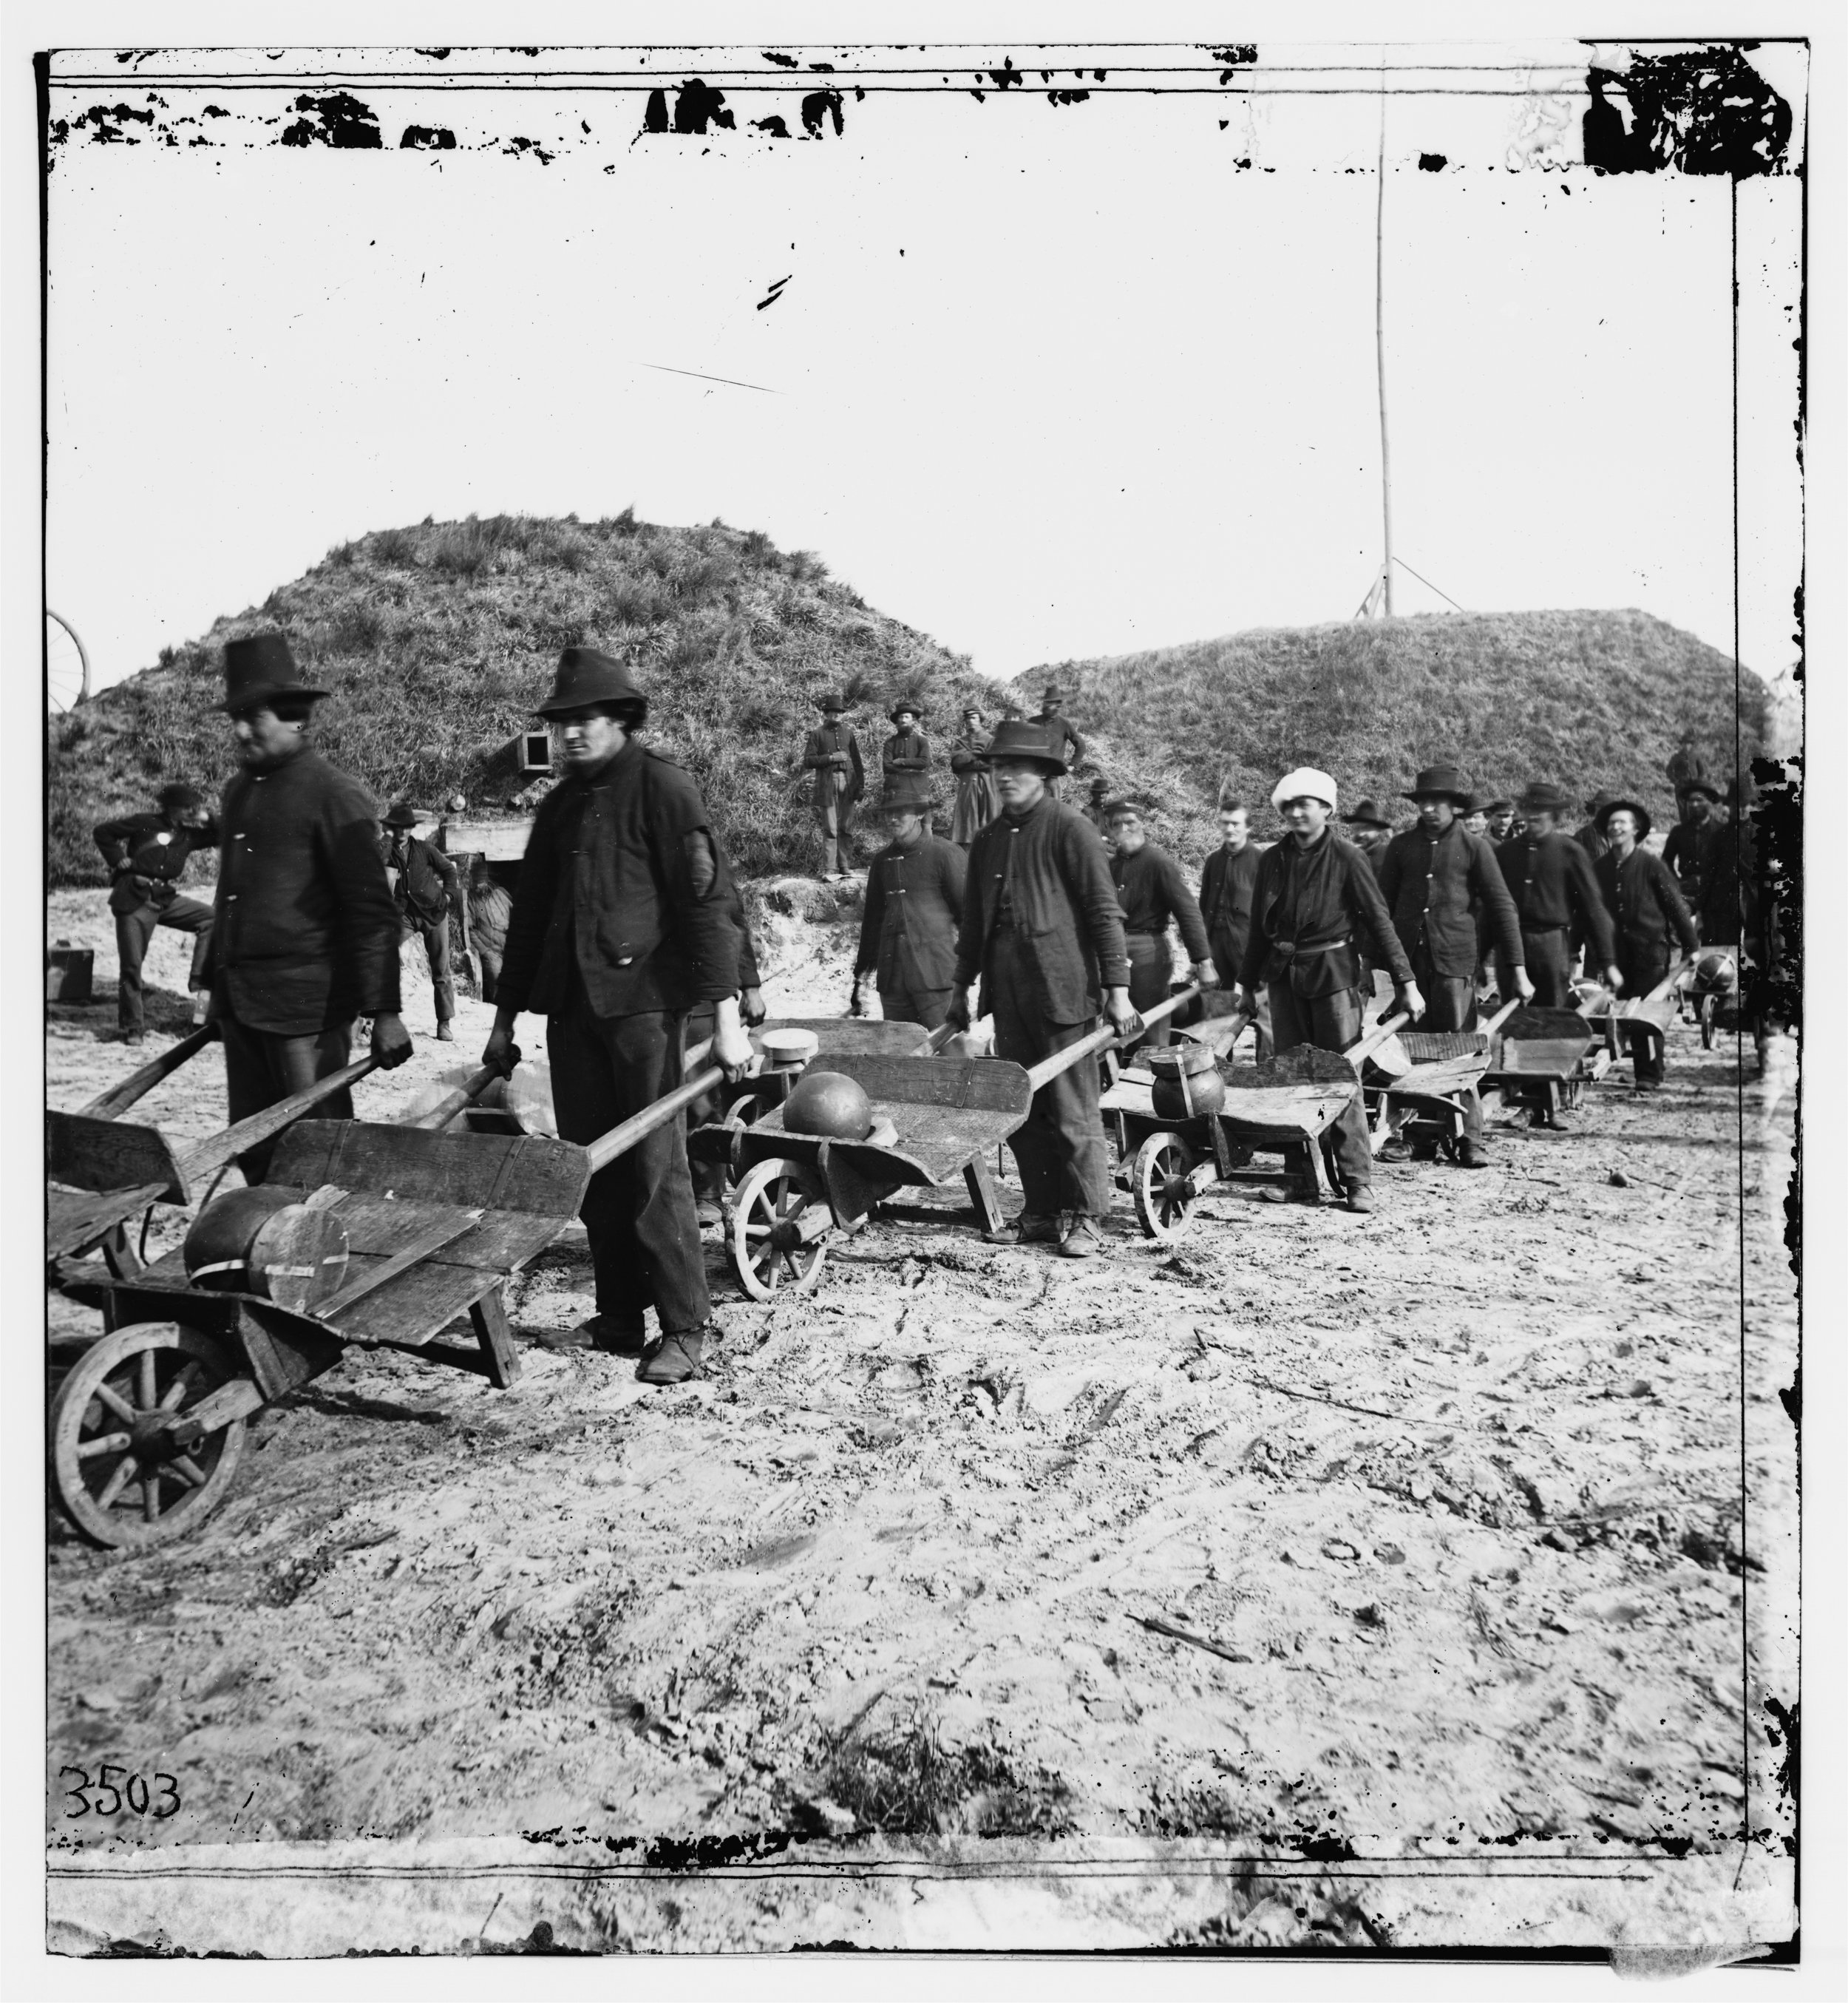 Earliest Known Images of People Smiling, Union soldiers moving artillery shells with wheelbarrows in Fort McAllister, Georgia, by Samuel A. Cooley, 1864